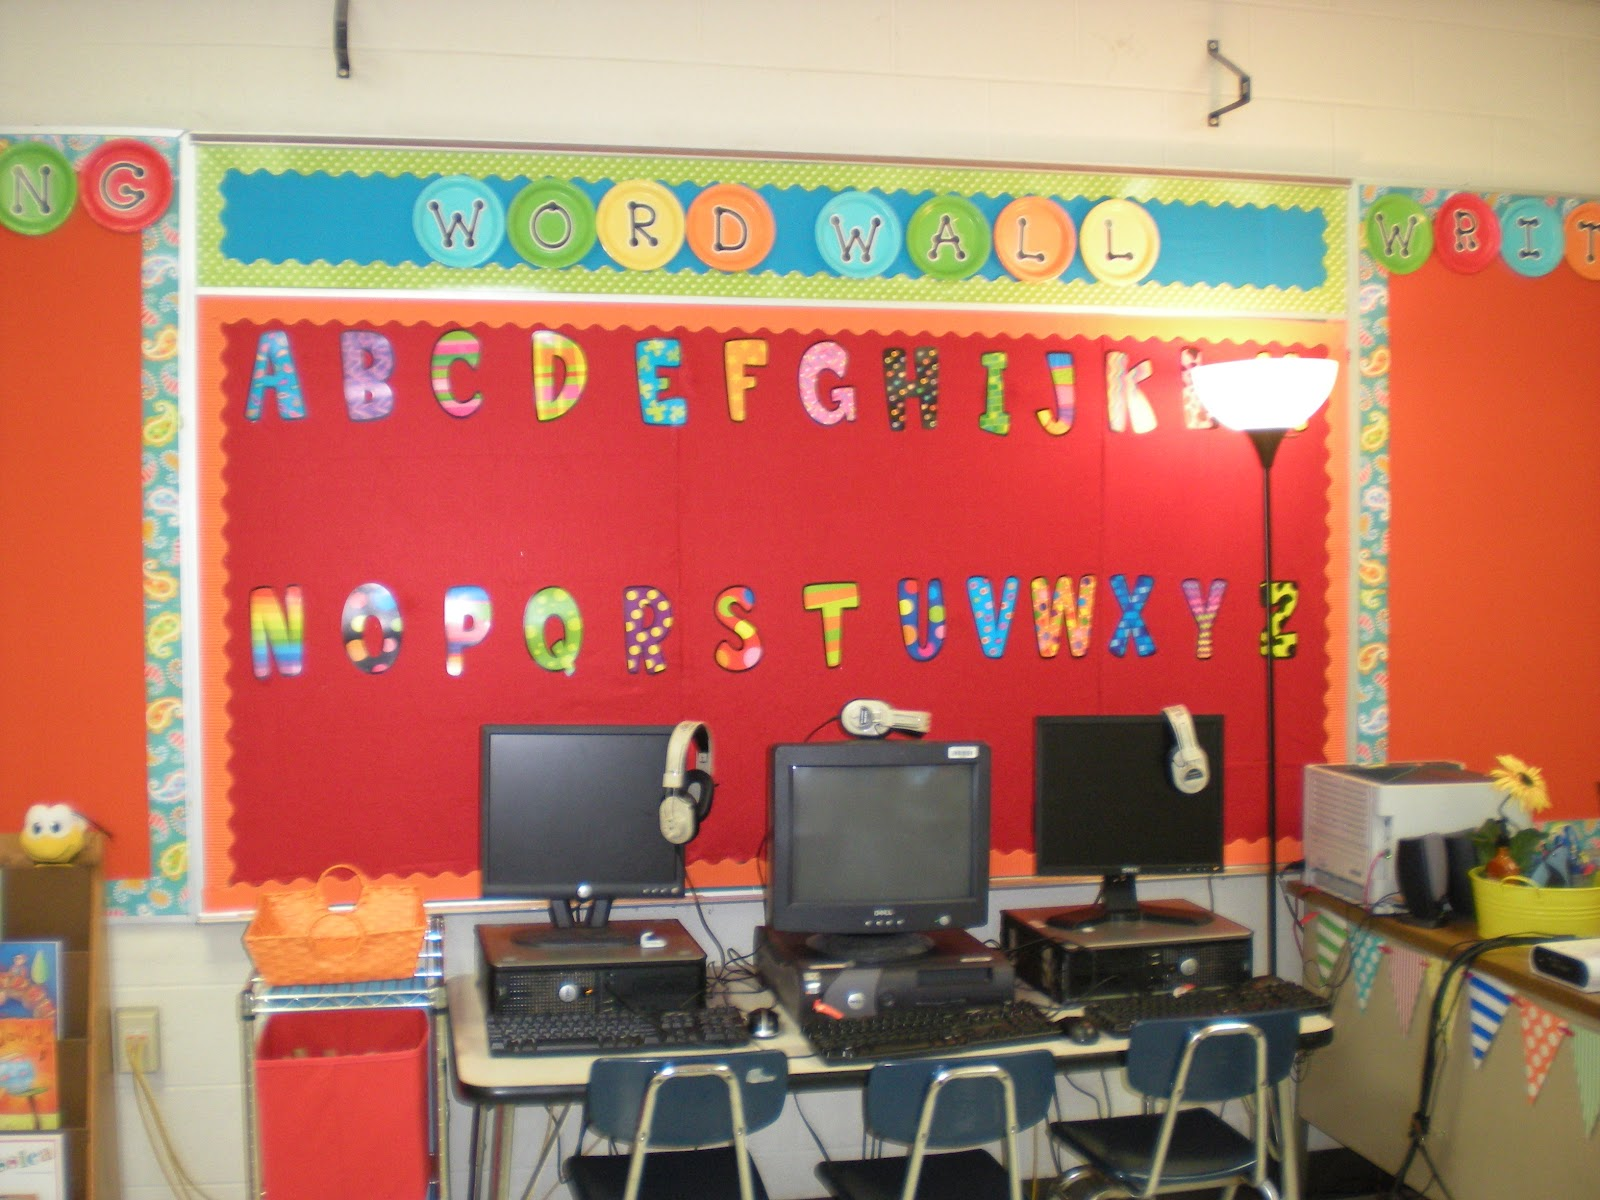 My New Classroom on anchor party decorations